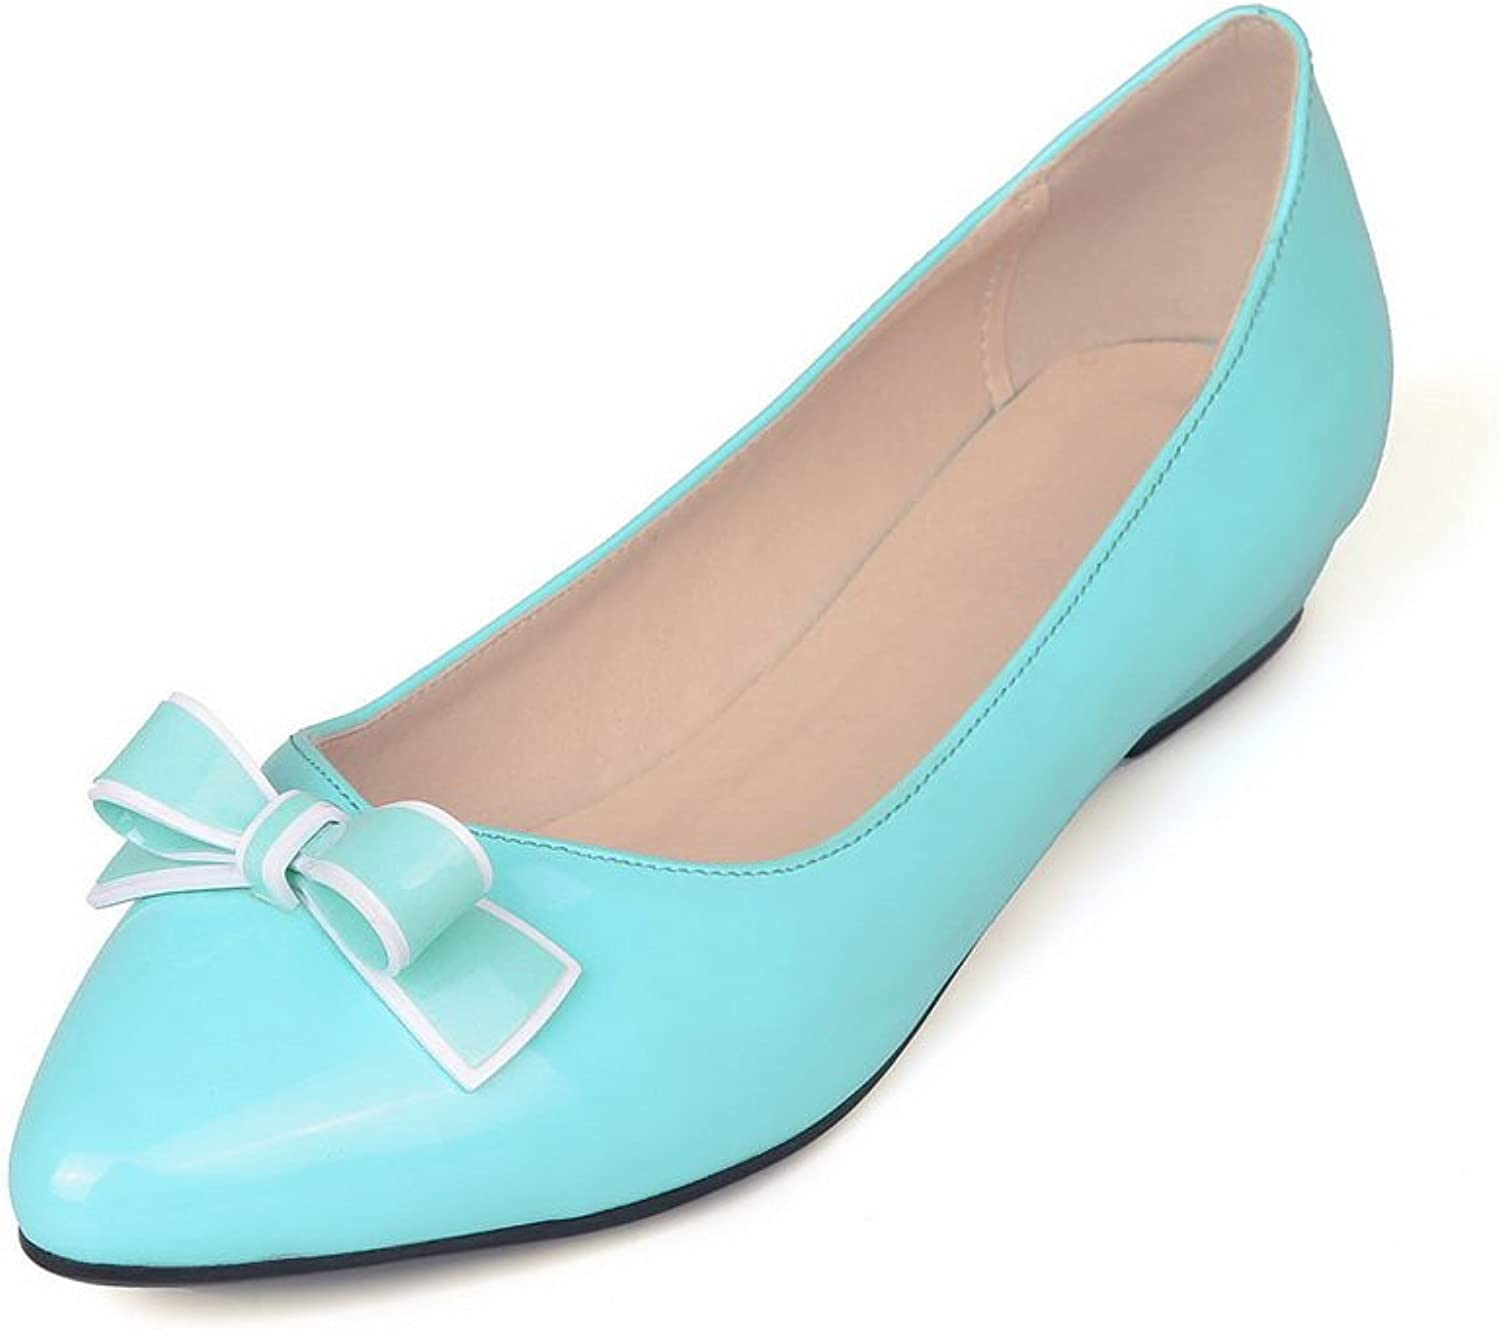 BalaMasa Womens Bows Low-Cut Uppers Pull-On Microfiber Pumps-shoes